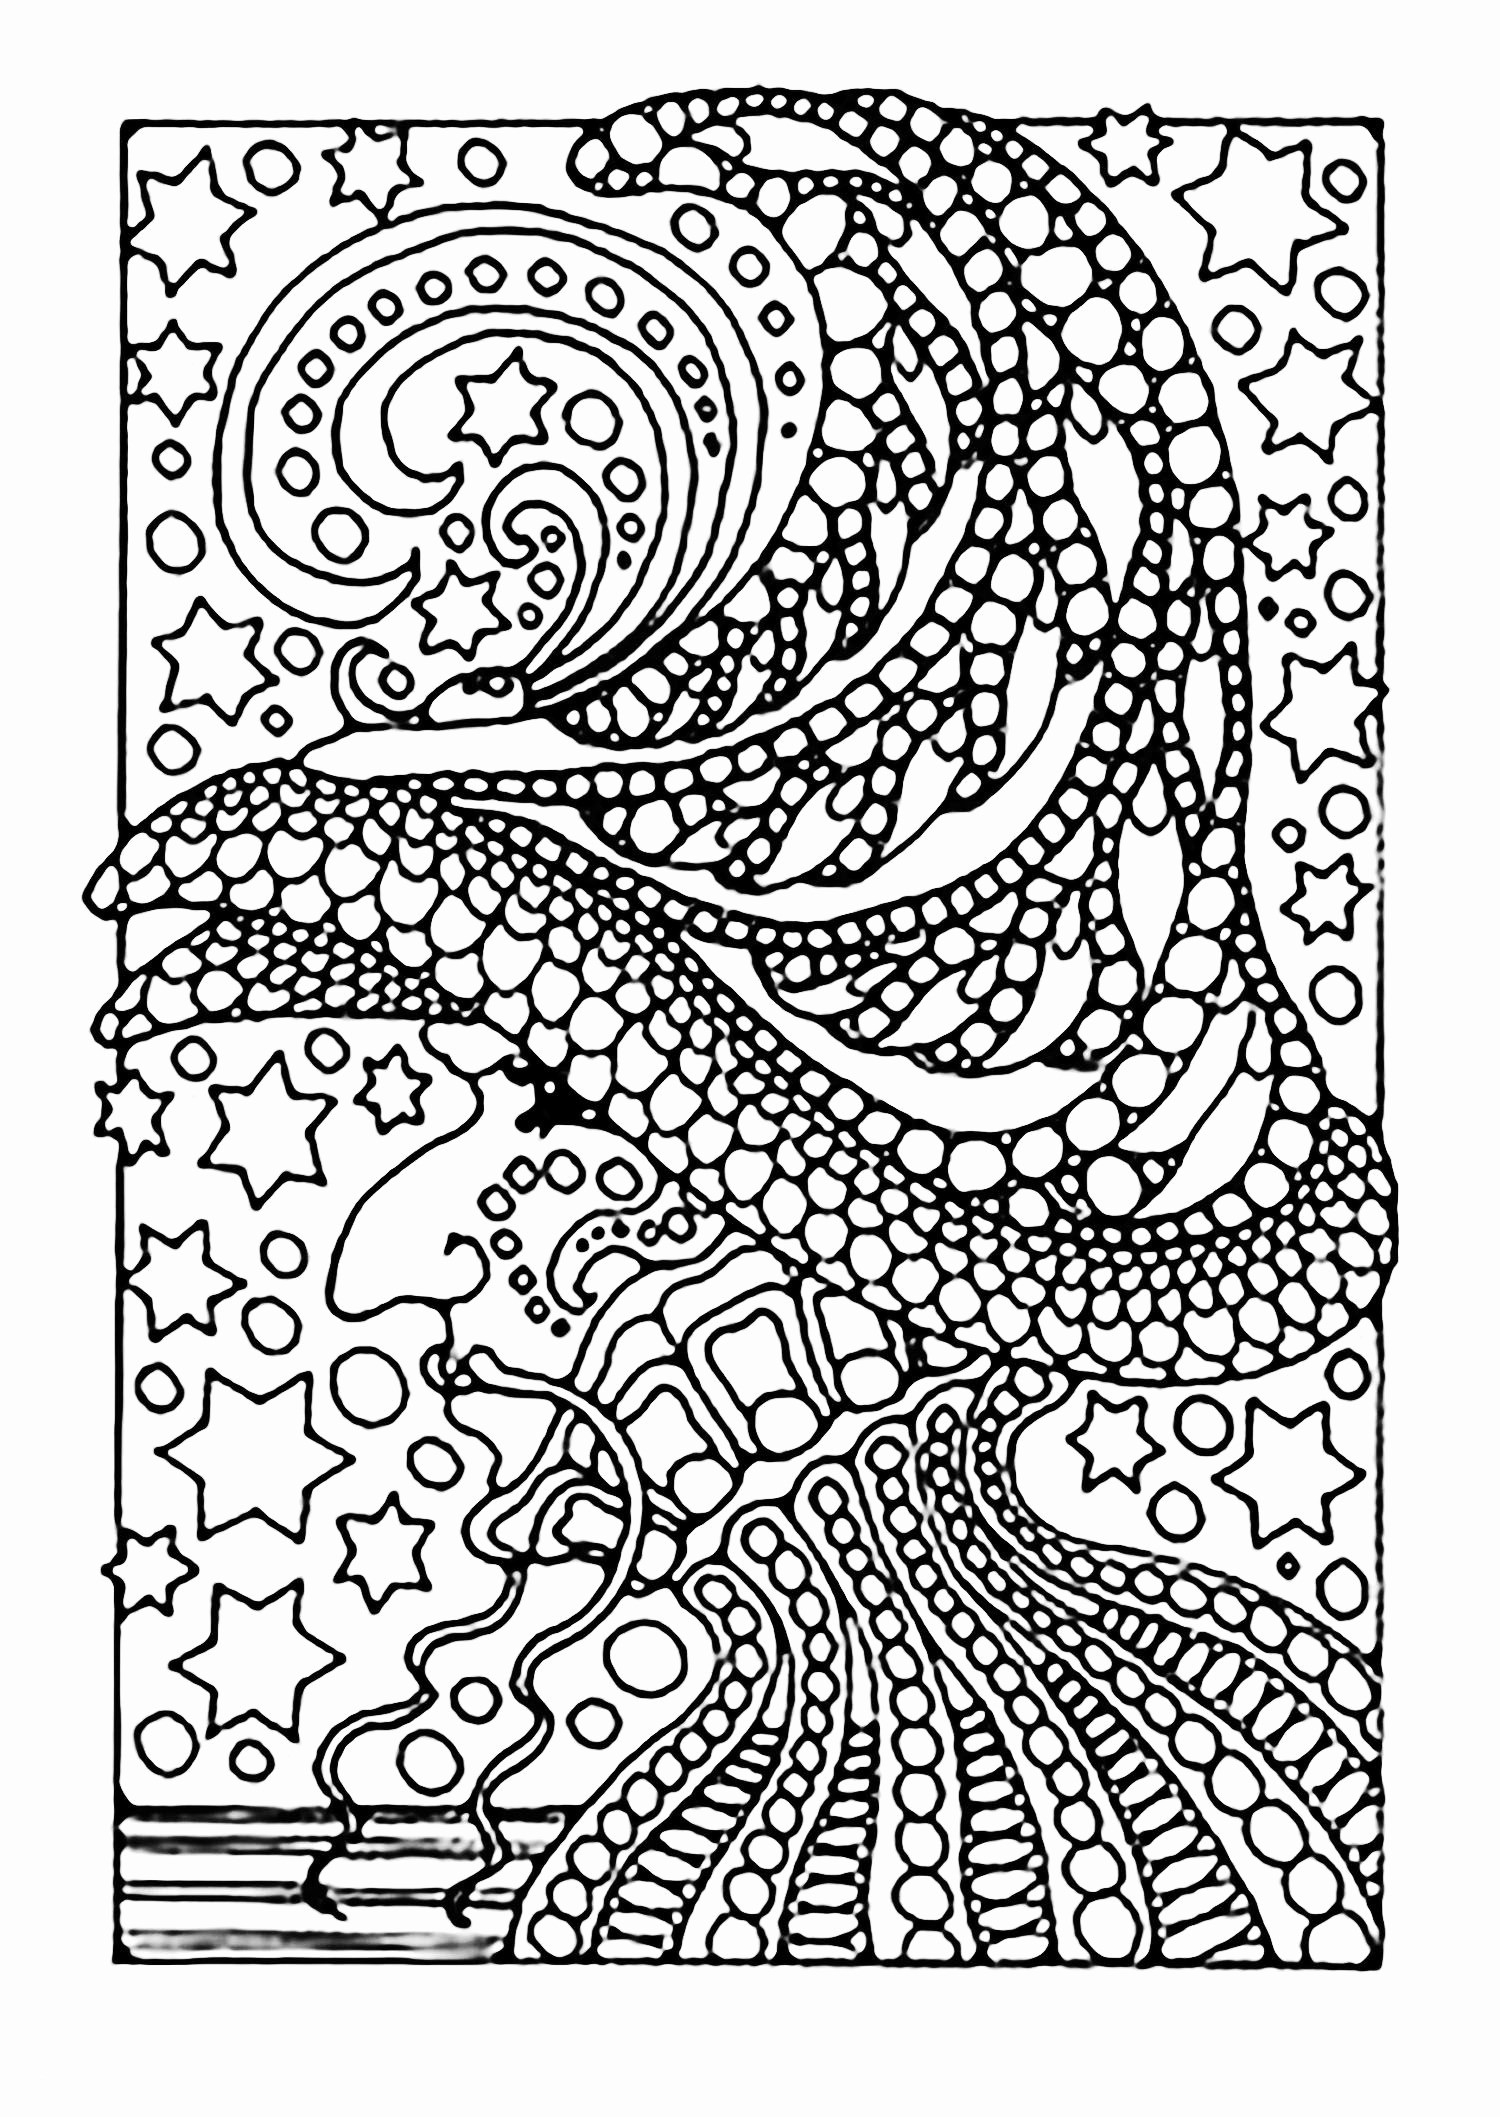 Gecko Coloring Pages  Collection 10r - Free Download